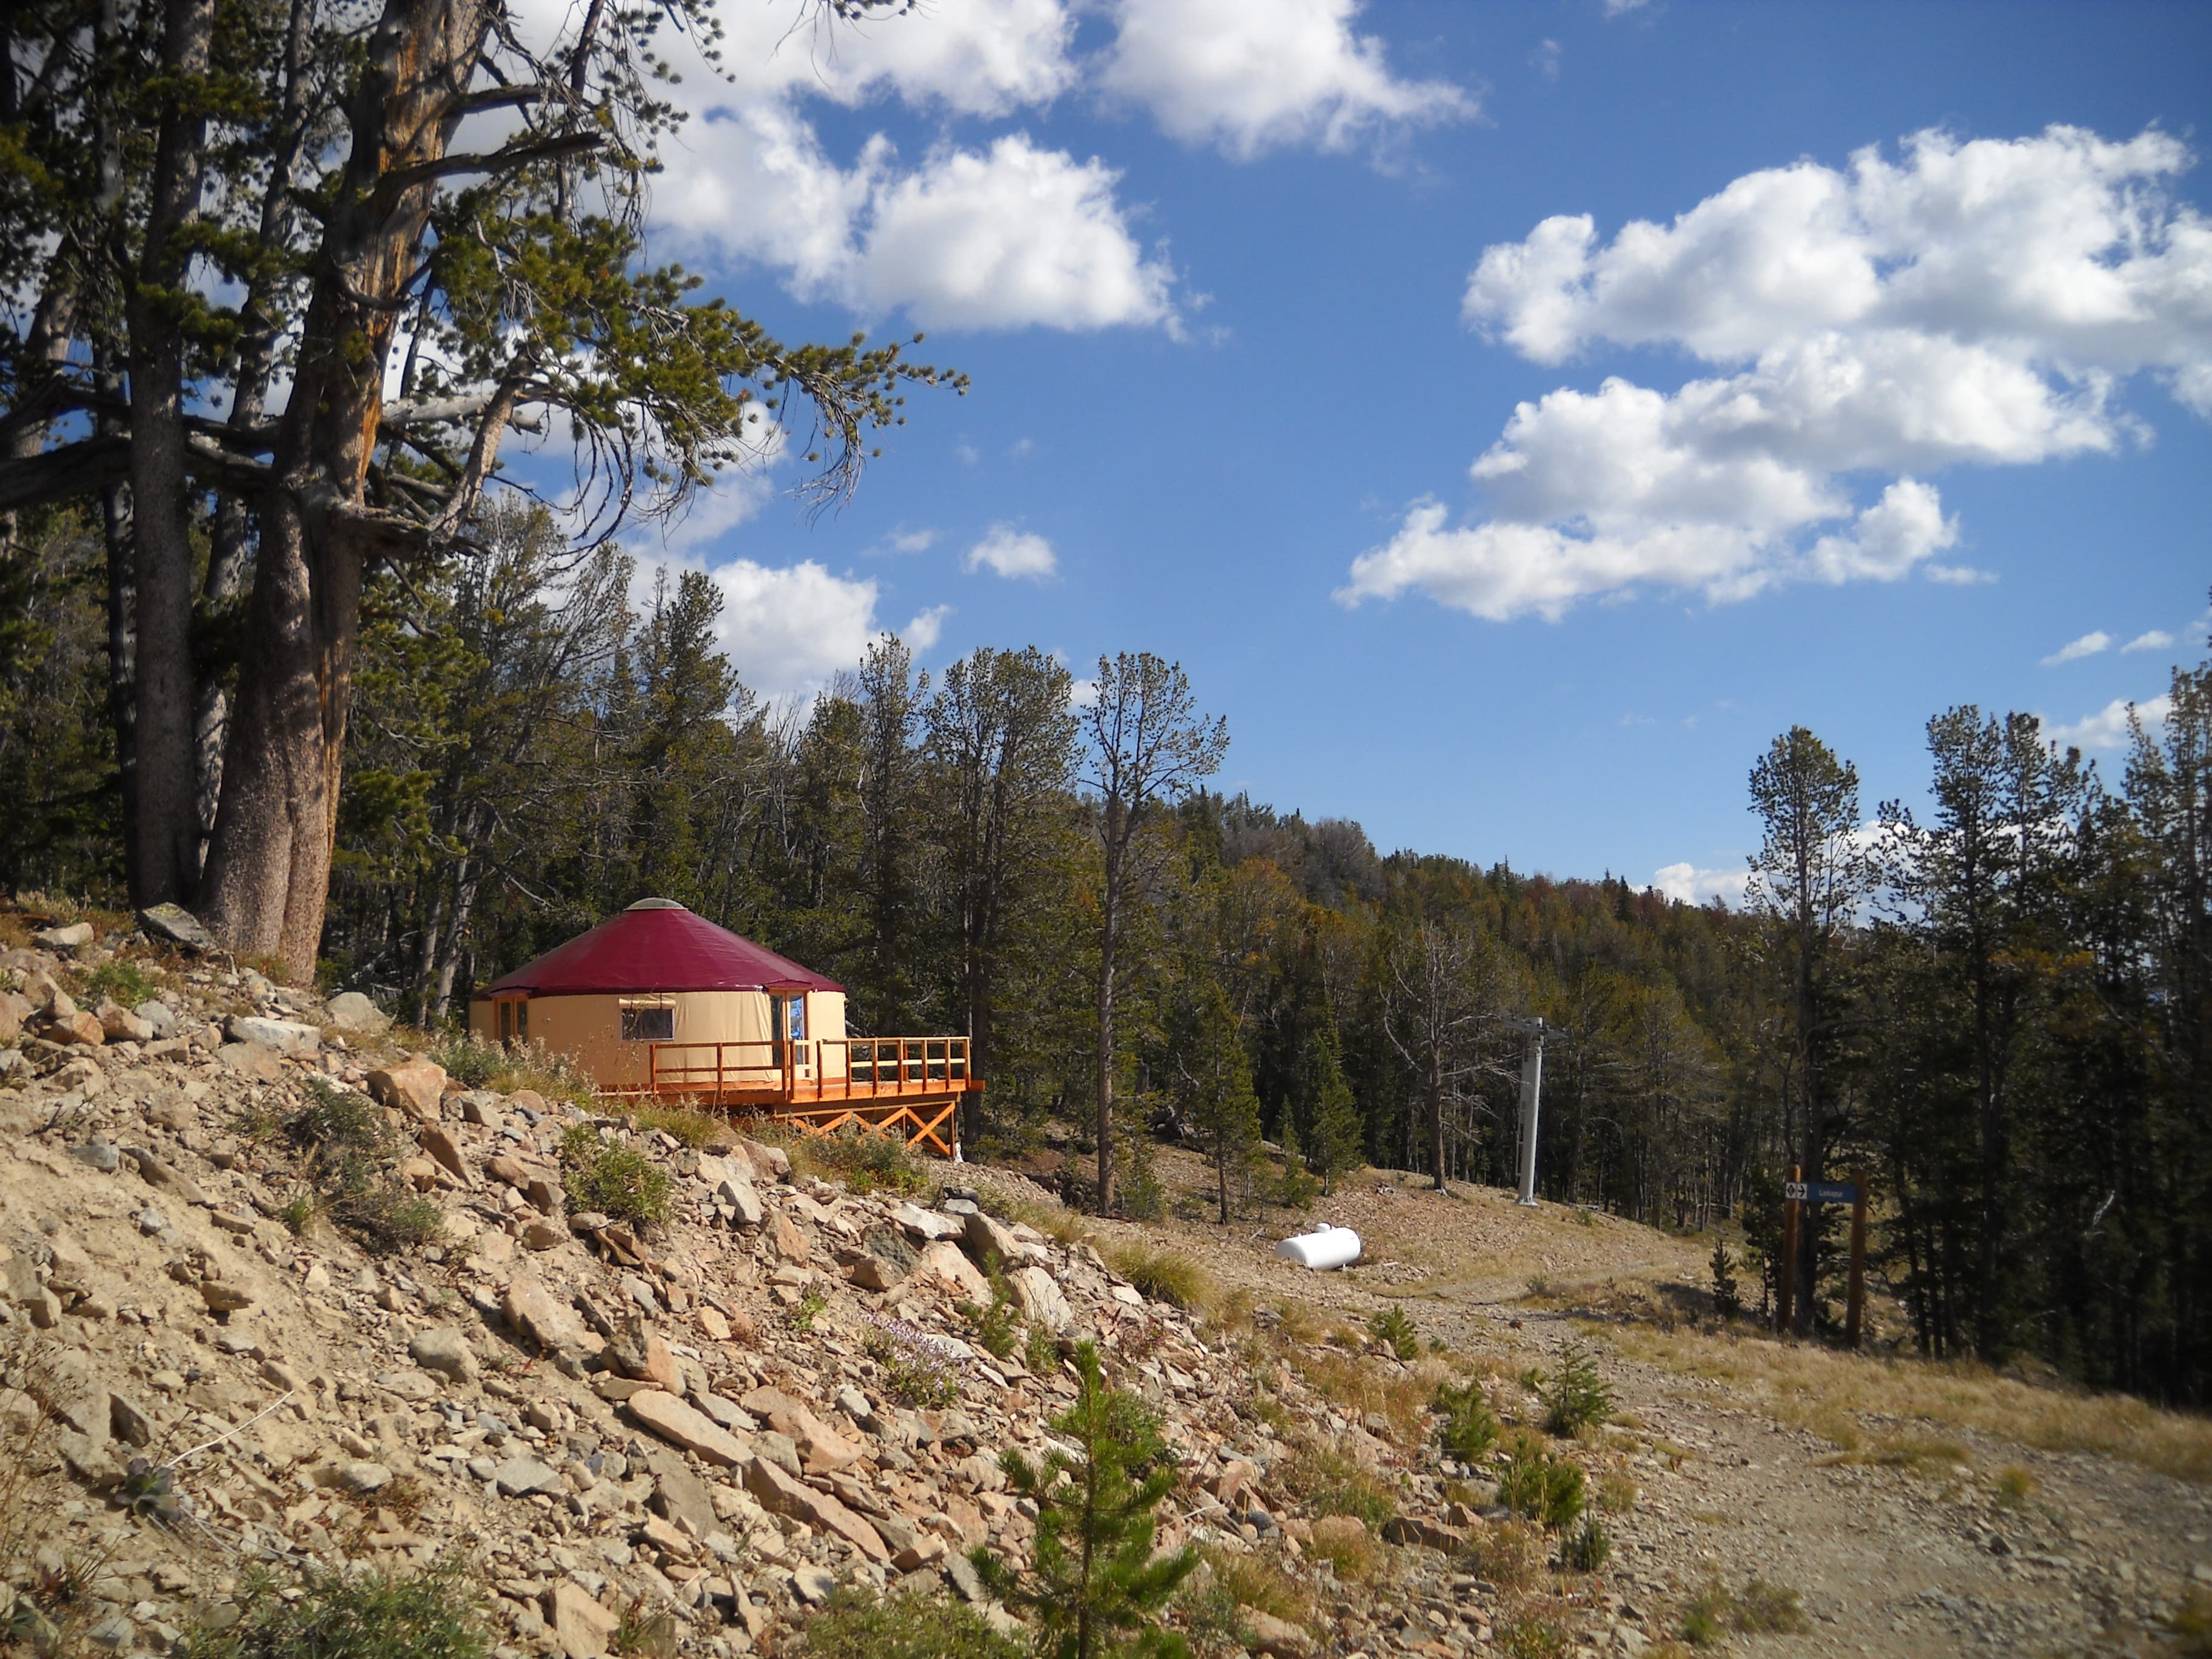 tan yurt with a red roof in the montana forest